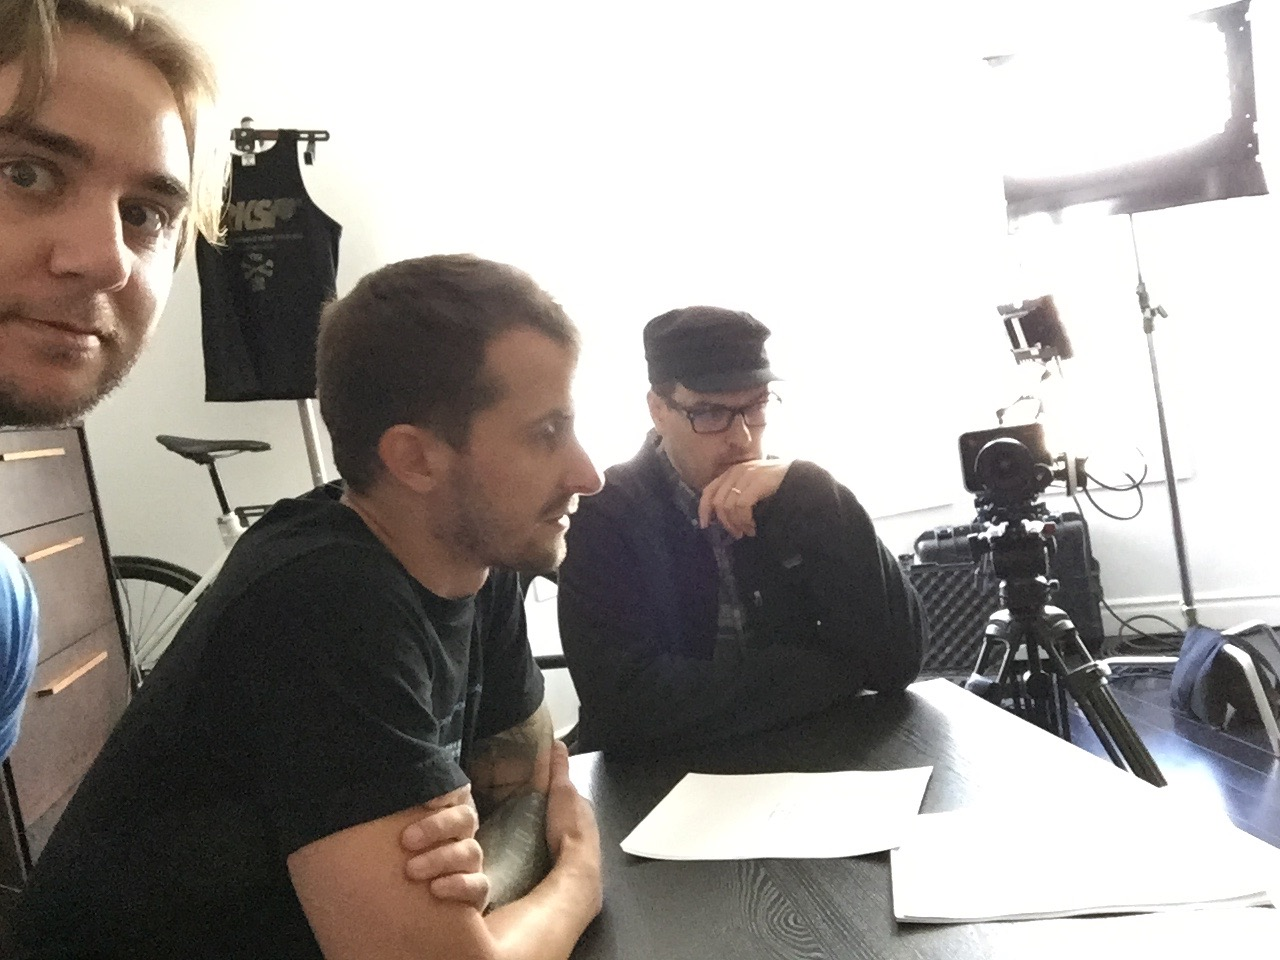 The morning production meeting that began it all